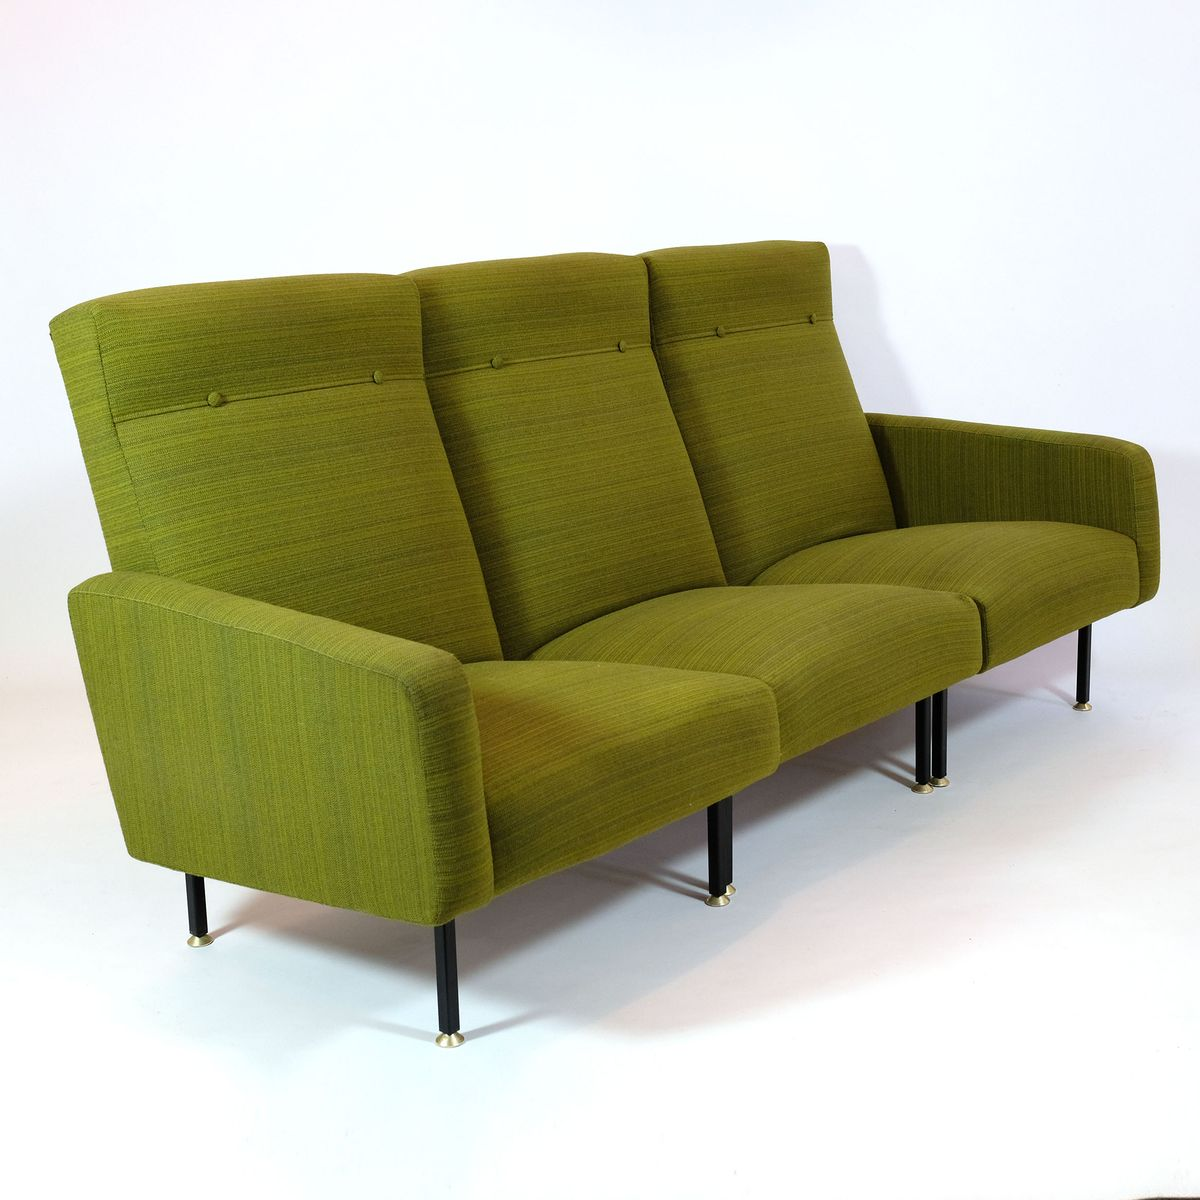 French Green Modular Sofa From Steiner For Sale At Pamono